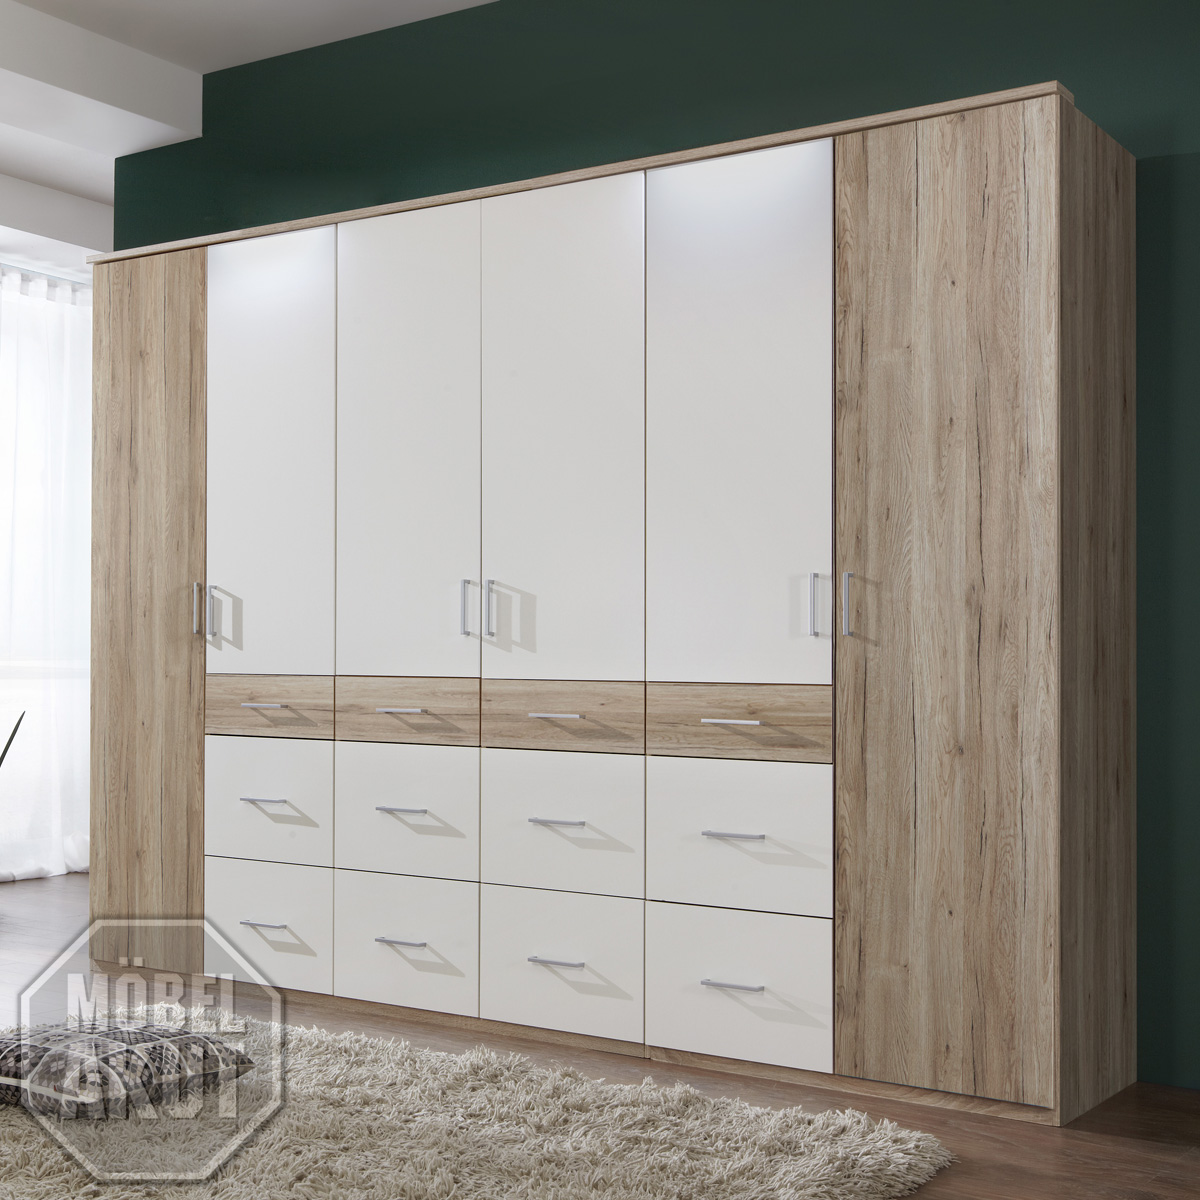 kleiderschrank click 2 schrank in san remo eiche wei 270 cm ebay. Black Bedroom Furniture Sets. Home Design Ideas